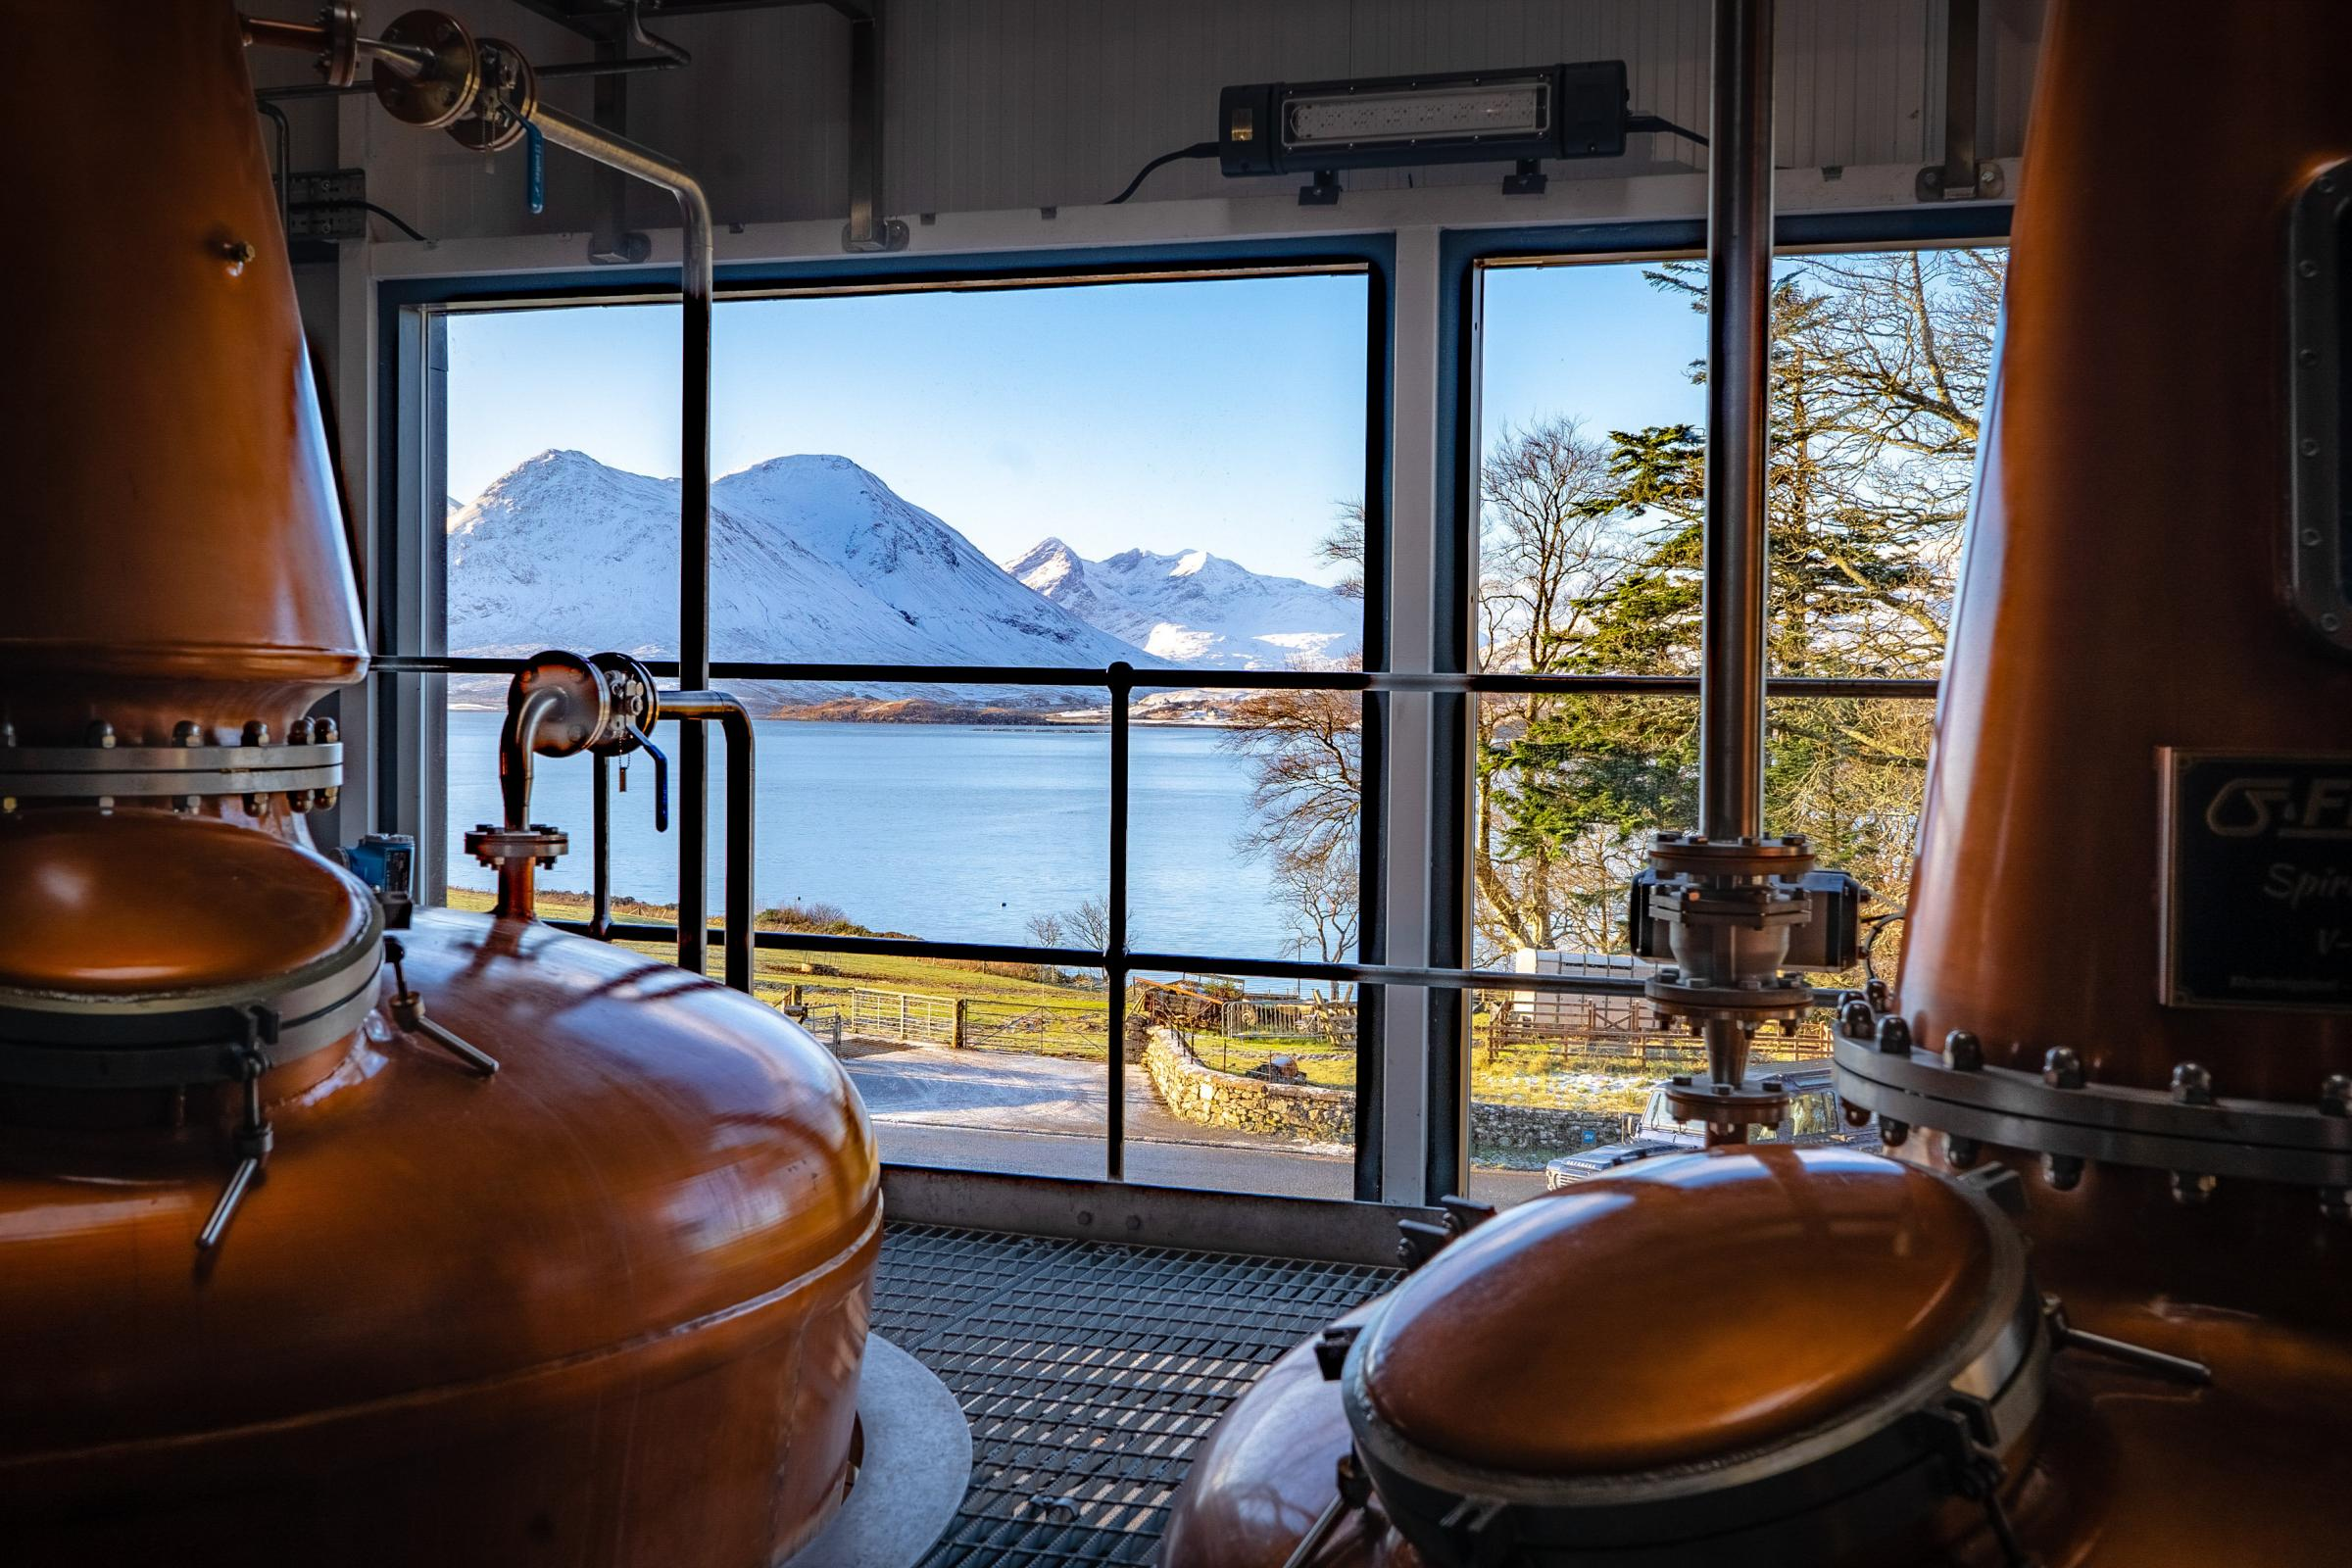 Festival allows whisky lovers to see the inner sanctum of islands' dram culture